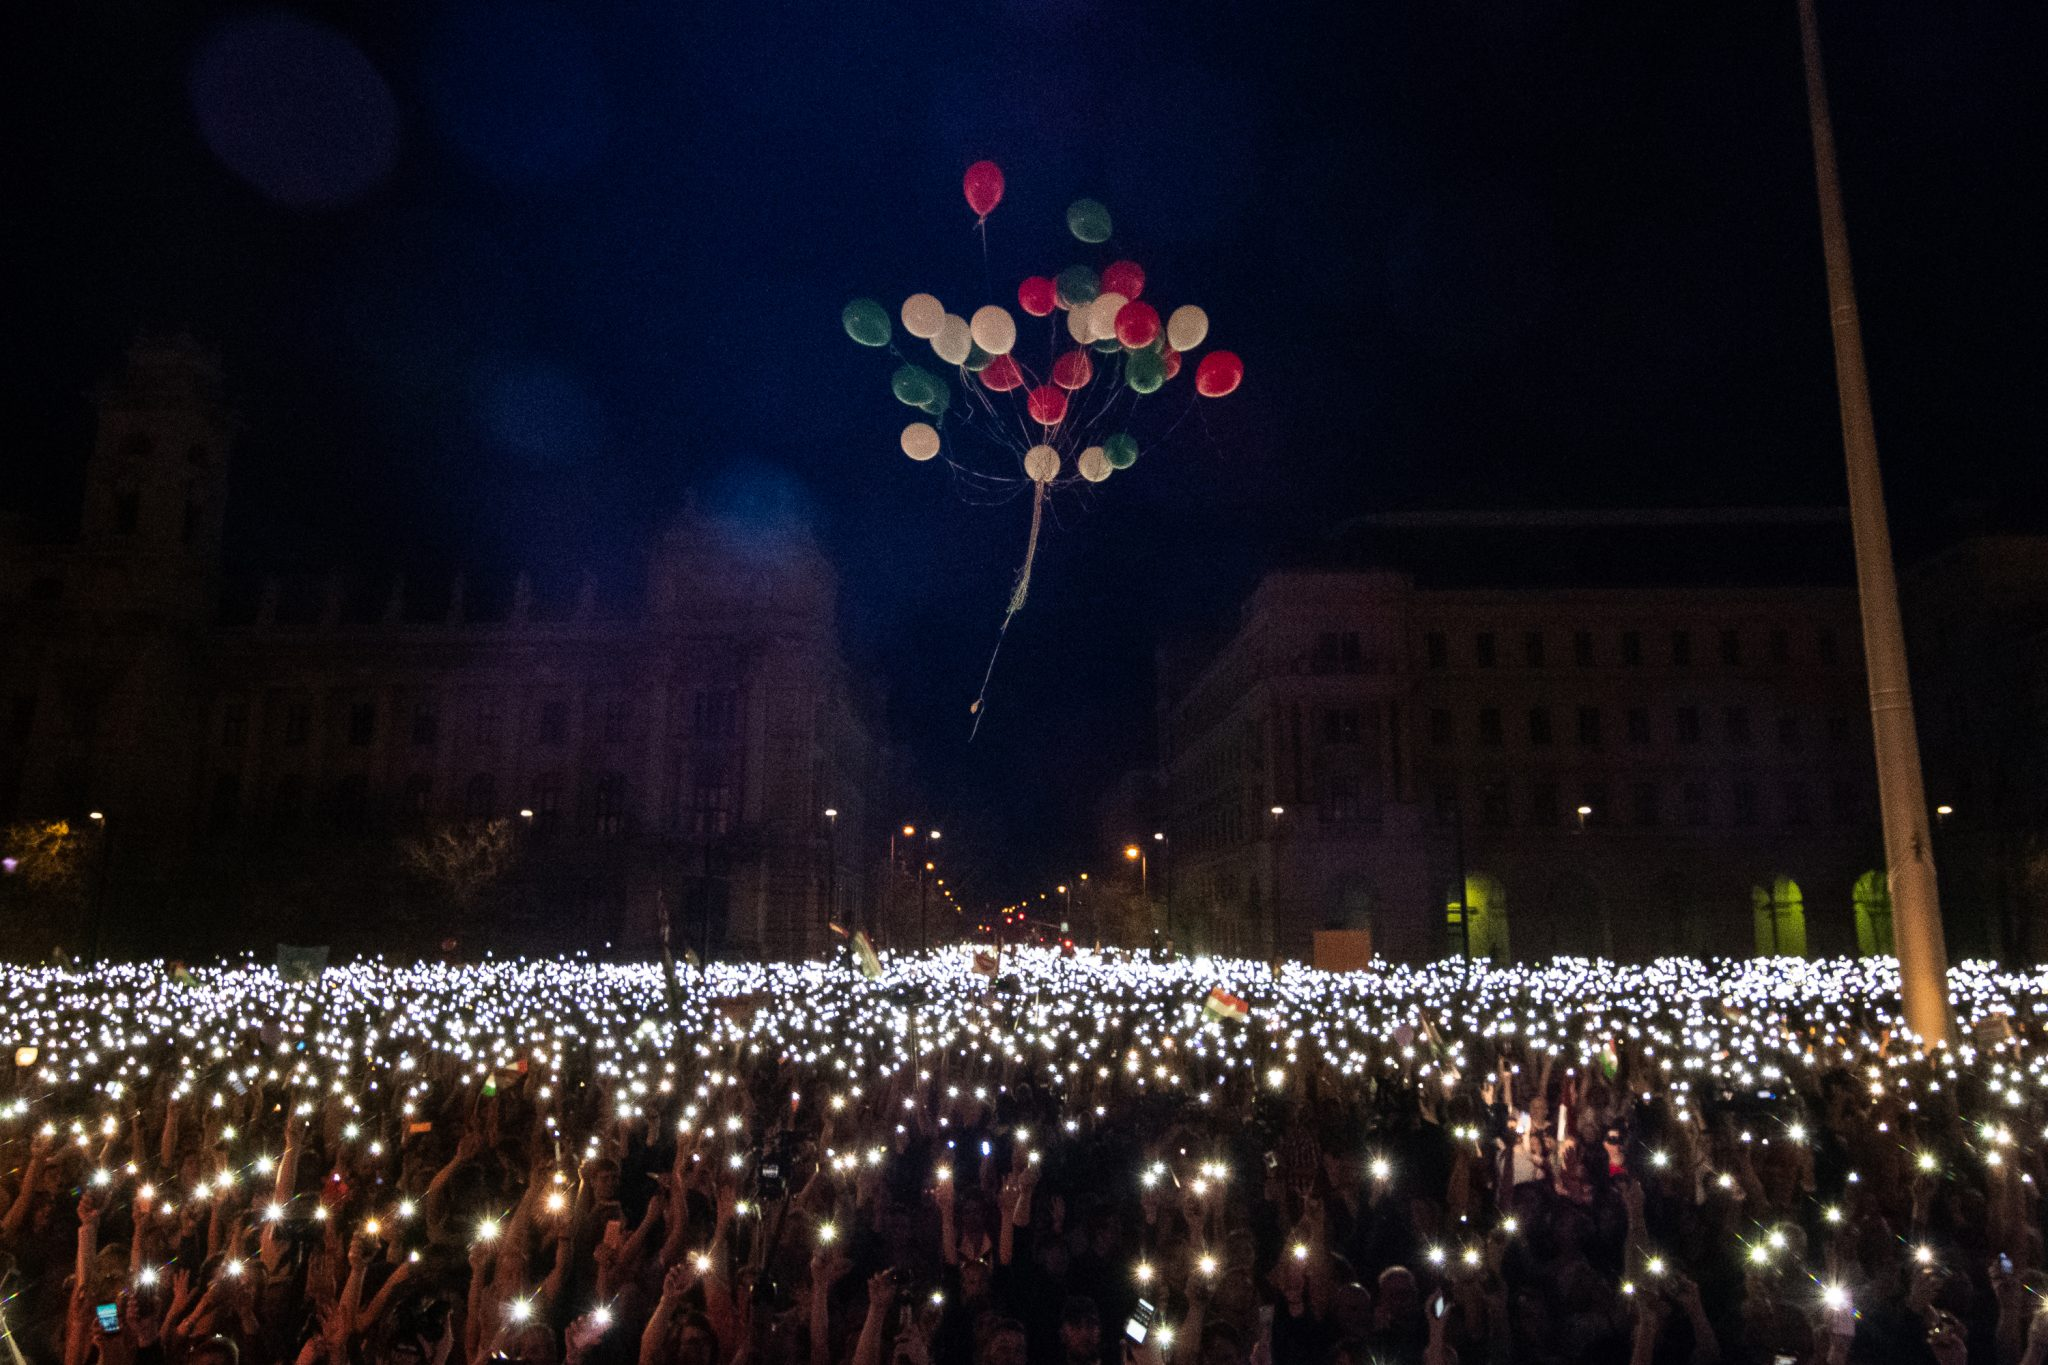 Best Hungarian Press Photos of 2018 Announced – Gallery! post's picture